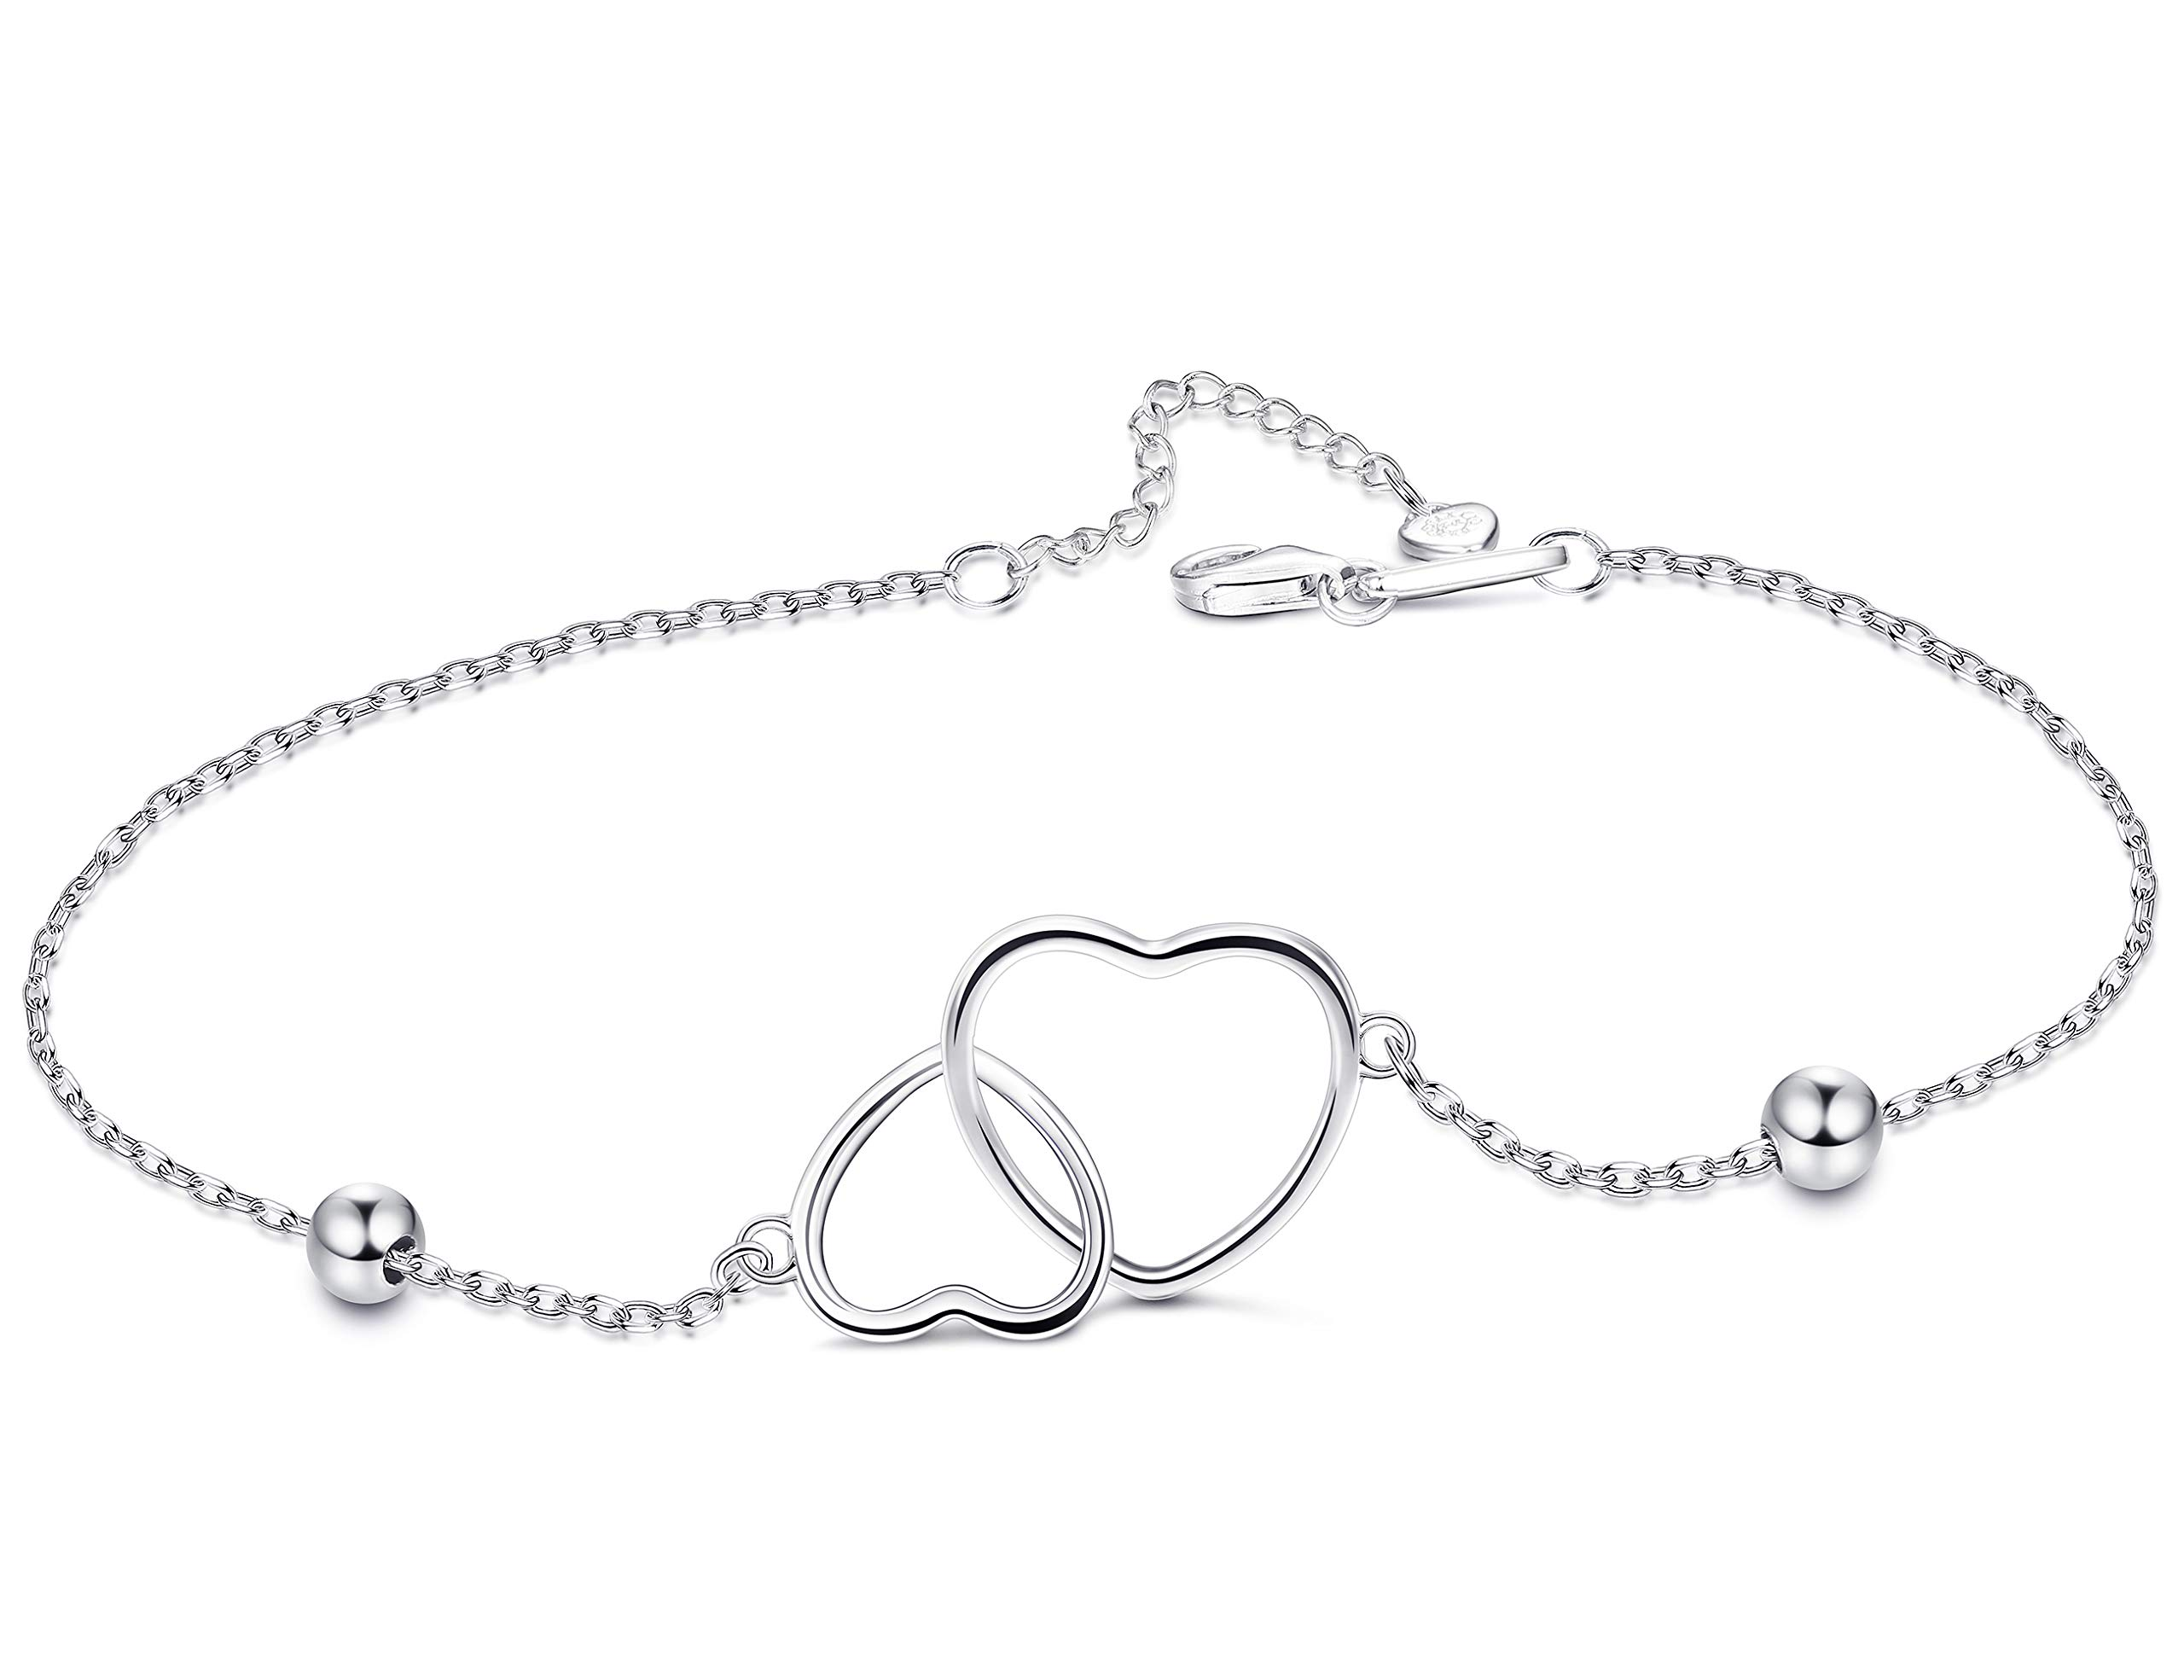 FUNRUN JEWELRY 925 Sterling Silver Double Heart Anklet for Women Girls  Adjustable Foot Ankle Gift for 18802e082cdb